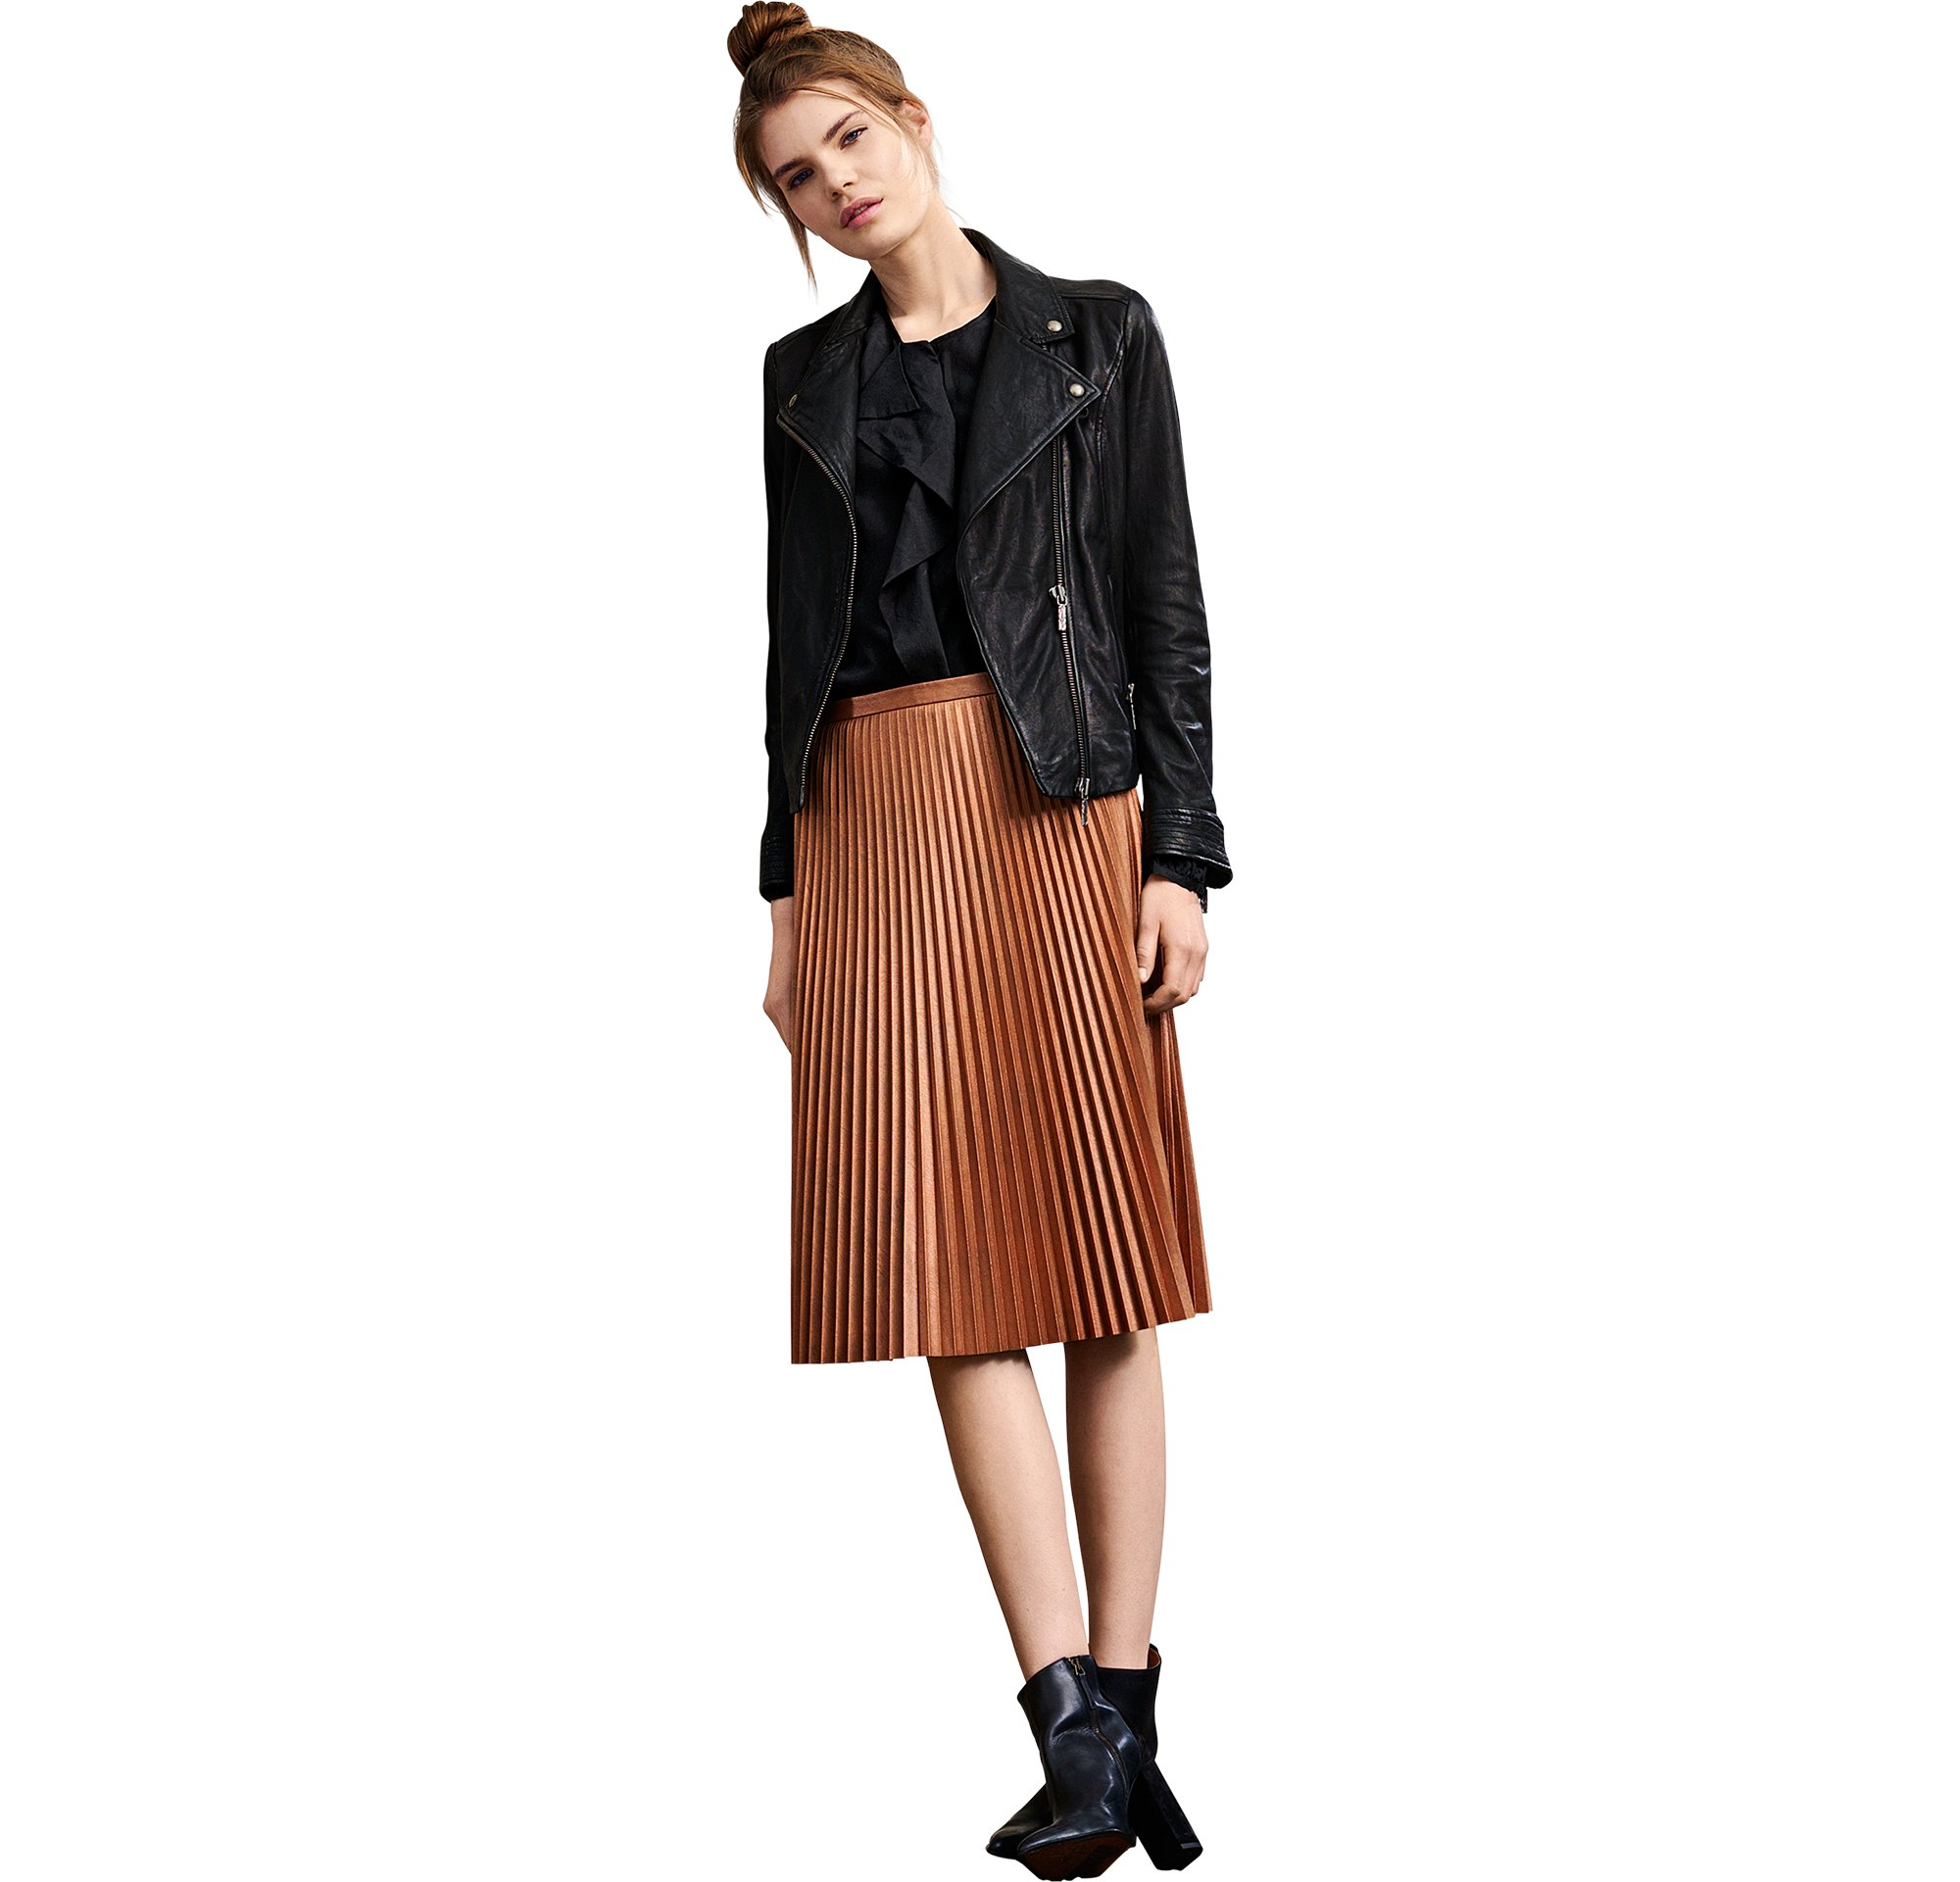 Leren jas, blouse en rok van BOSS Orange Womenswear